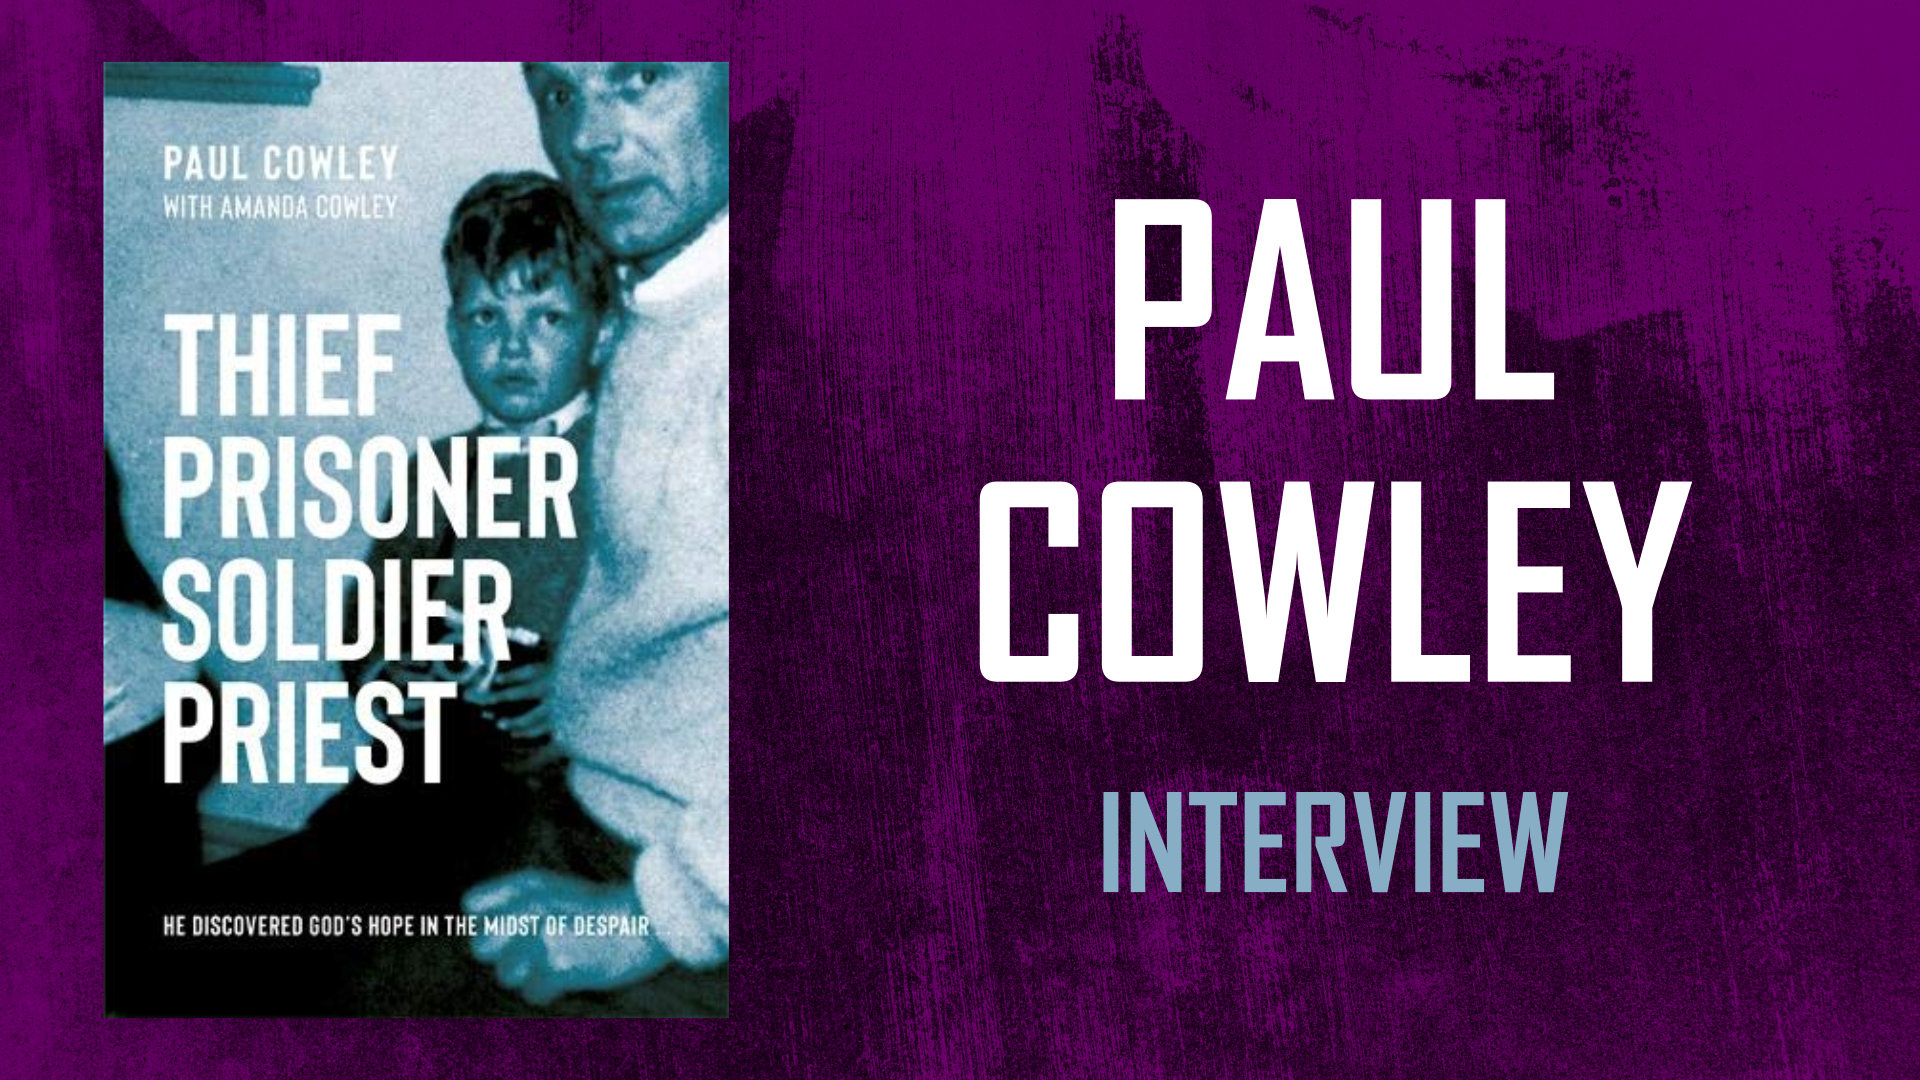 Thief Prisoner Soldier Priest - Interview with Paul Cowley